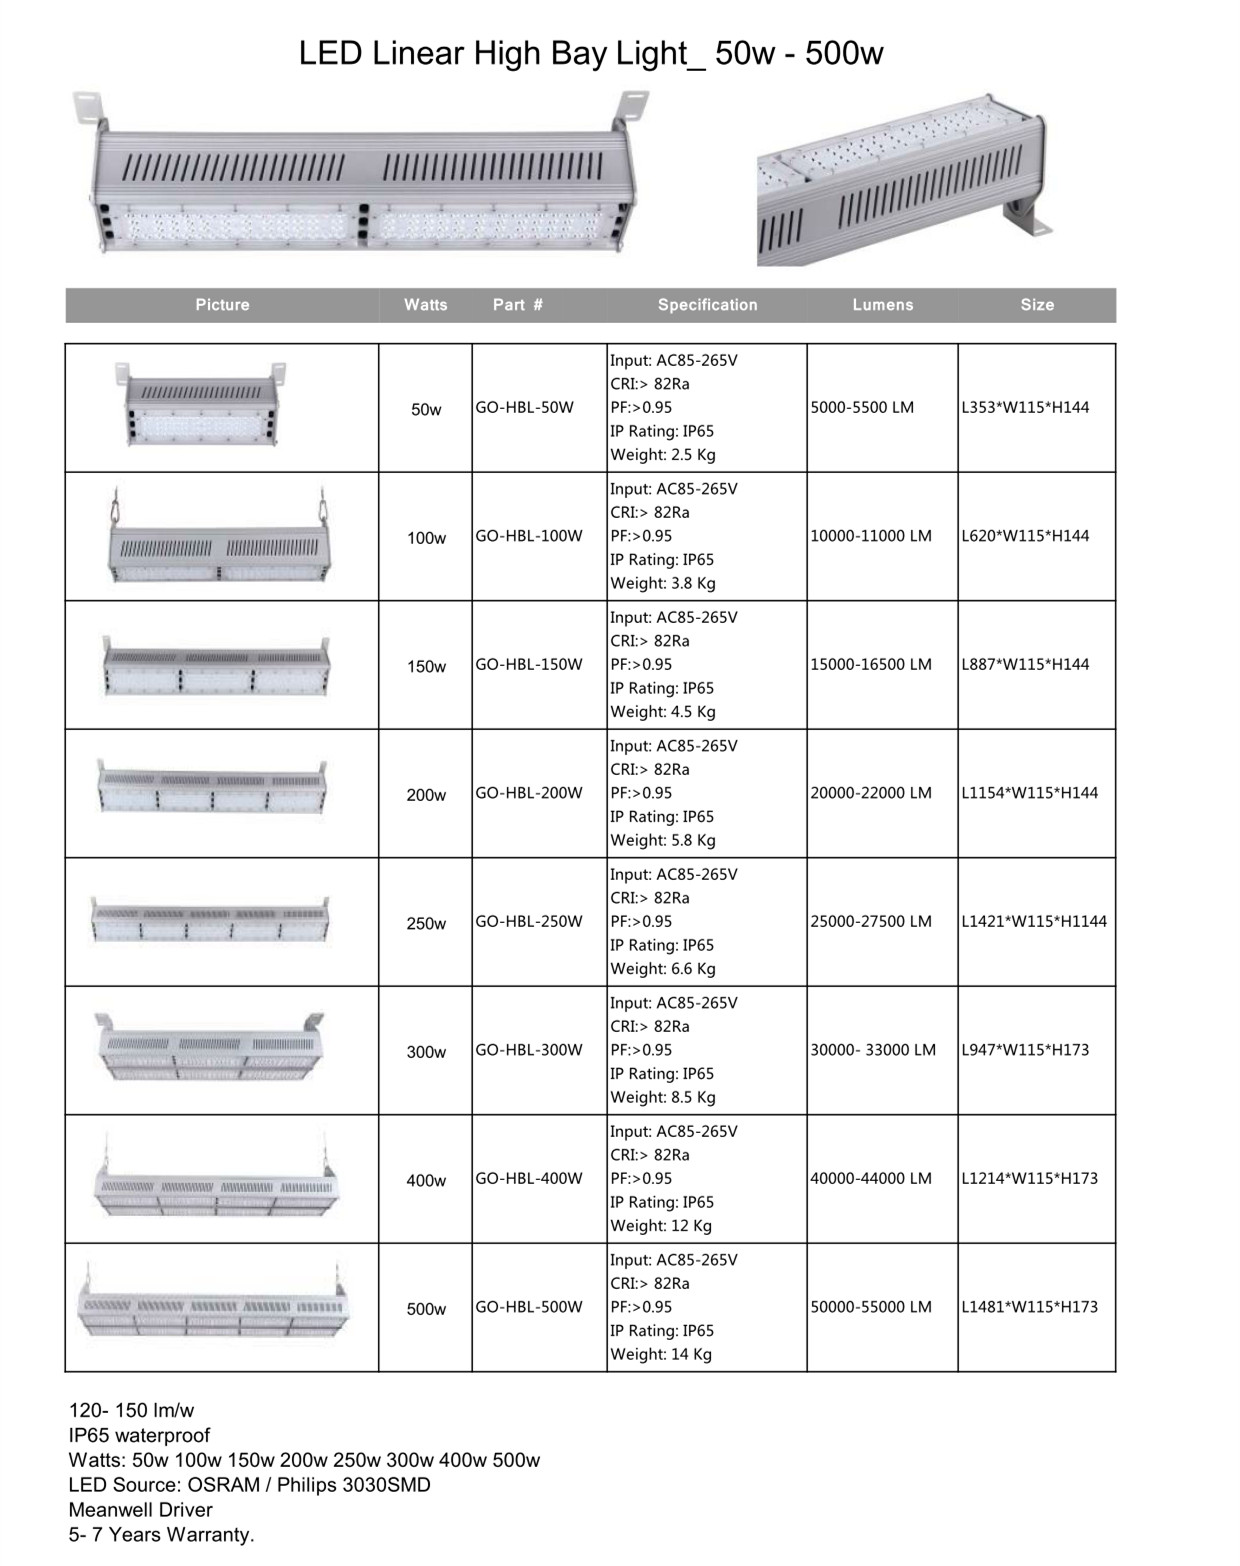 led-linear-high-bay-light_50w-500w